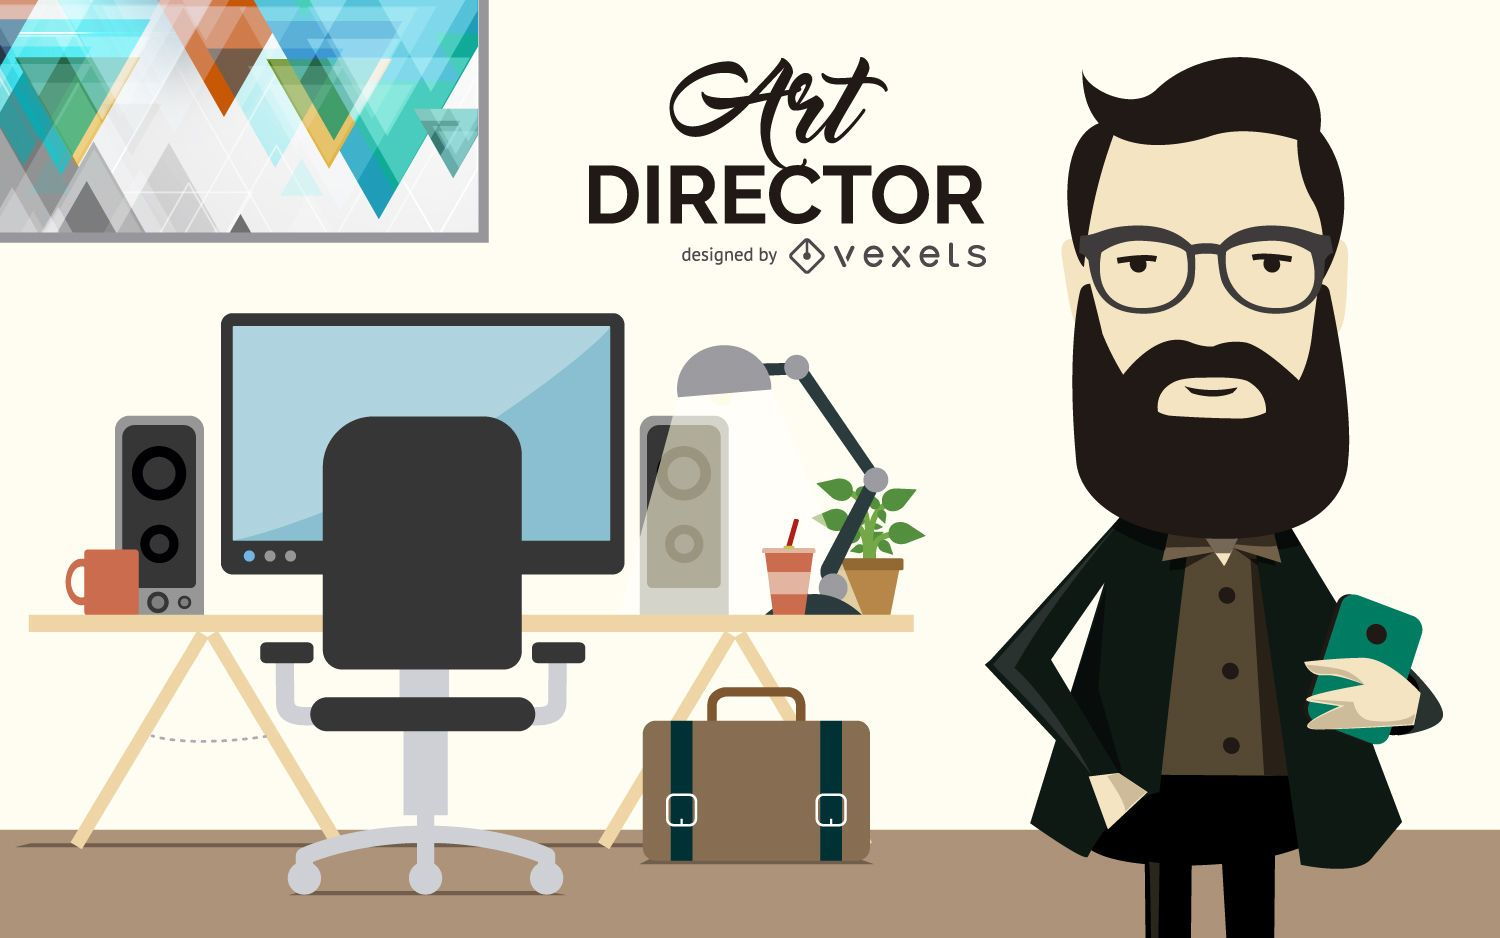 Flat art director illustration - Vector download